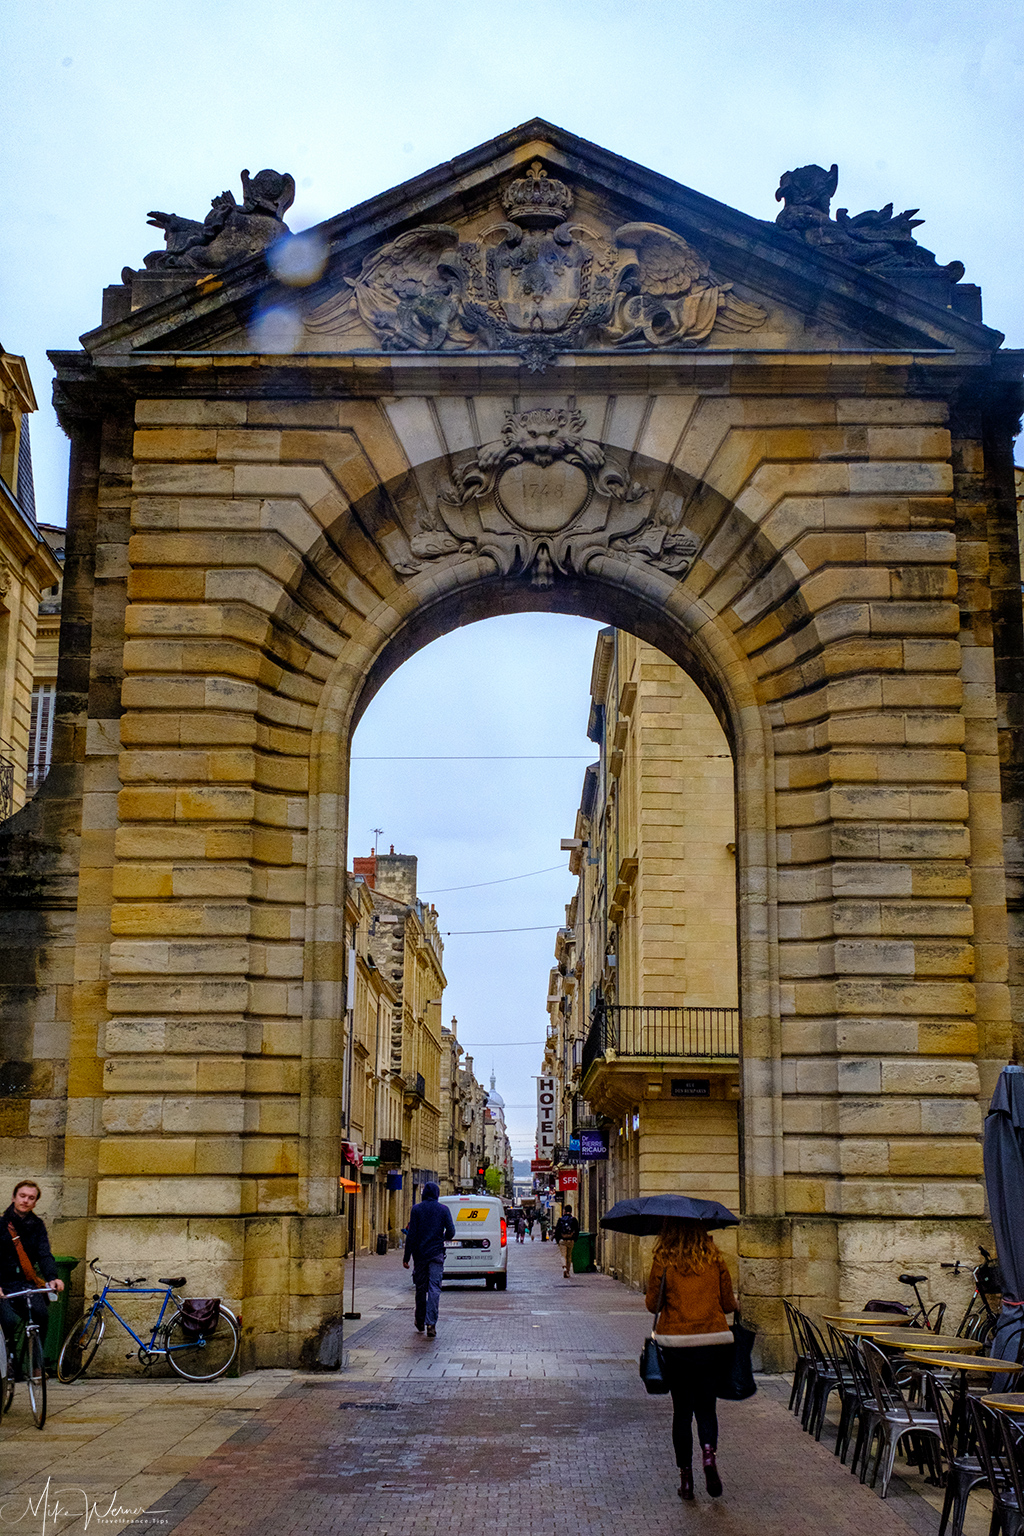 Porte Dijeaux in the West of Bordeaux